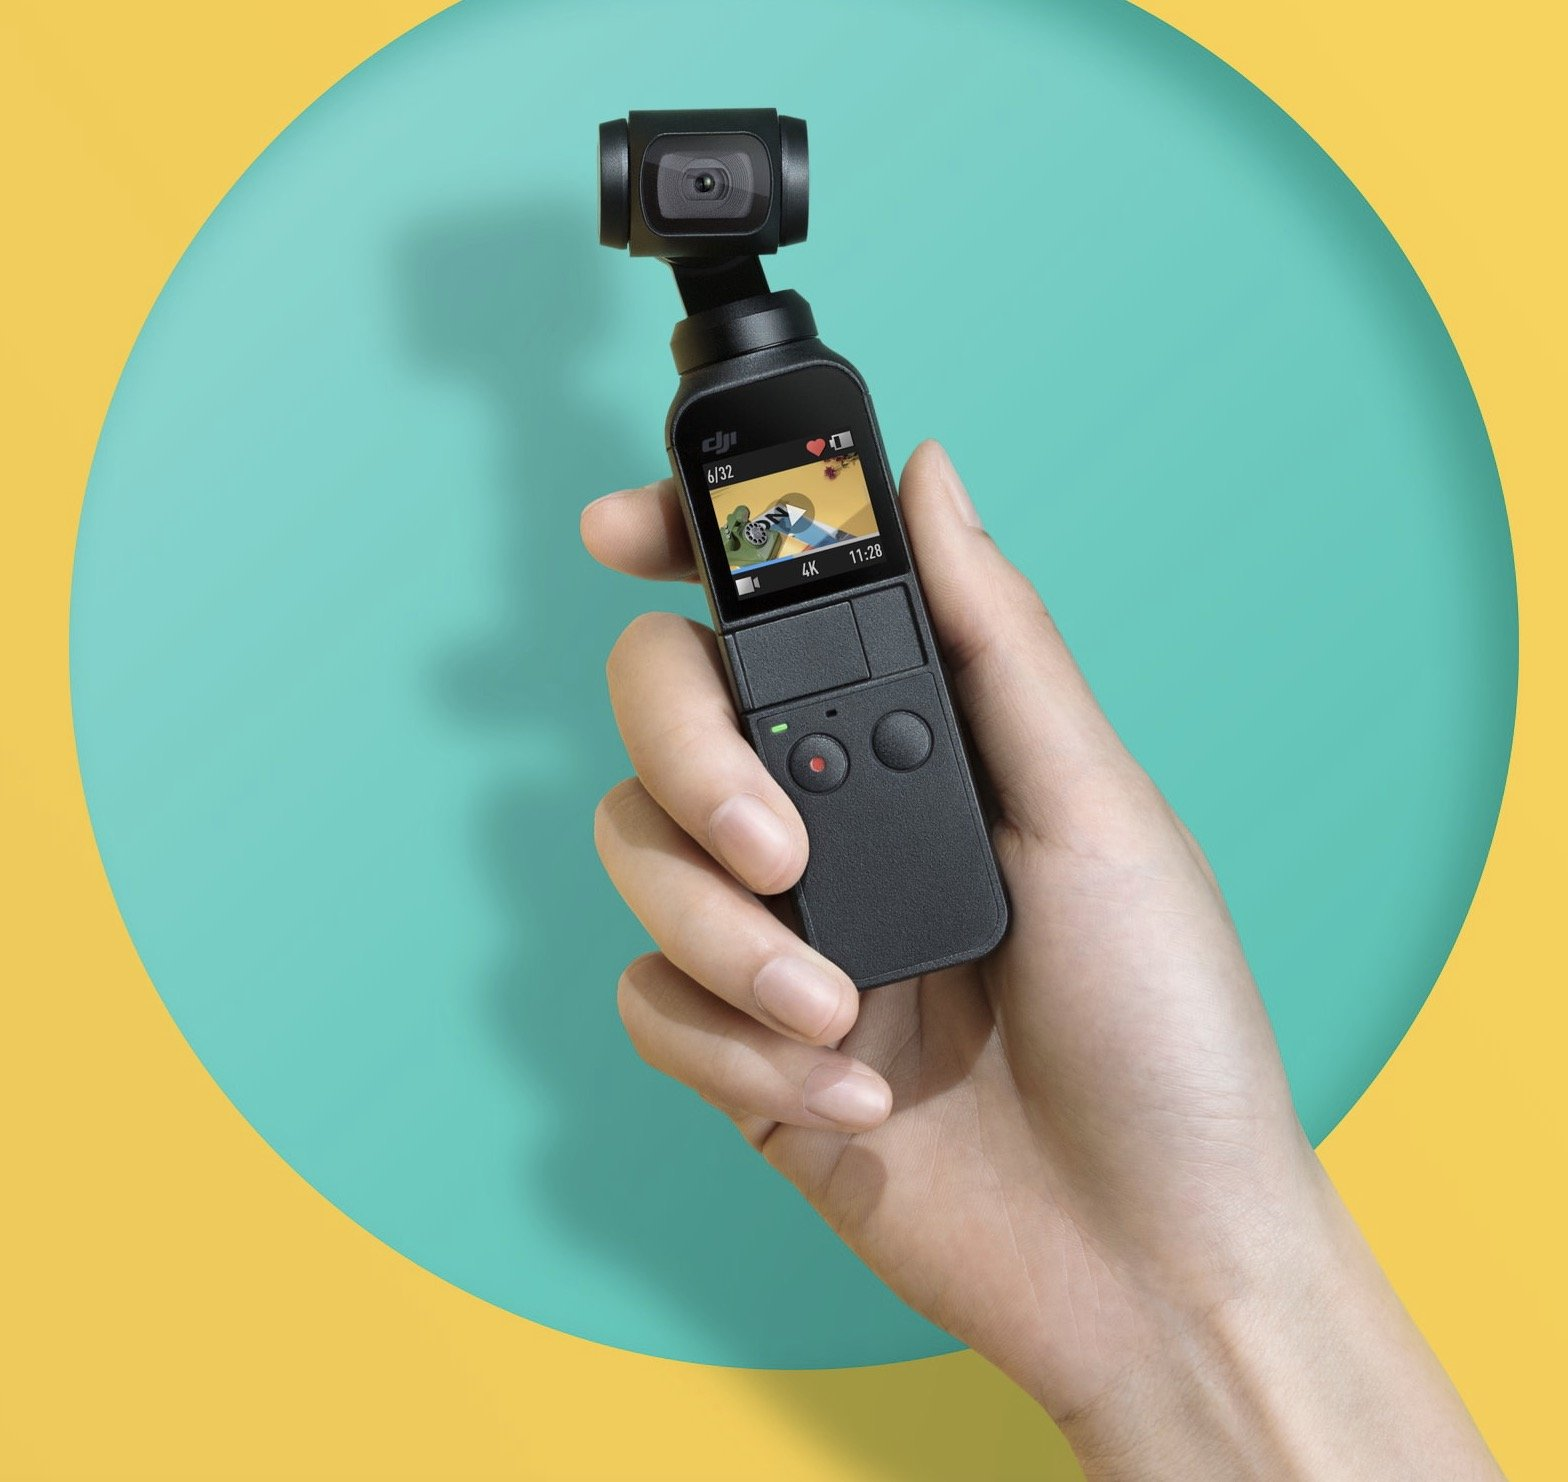 Attachable to Smartphone and 32GB Micro SD Card Bundle DJI Osmo Pocket Handheld 3 Axis Gimbal Stabilizer with Integrated Camera